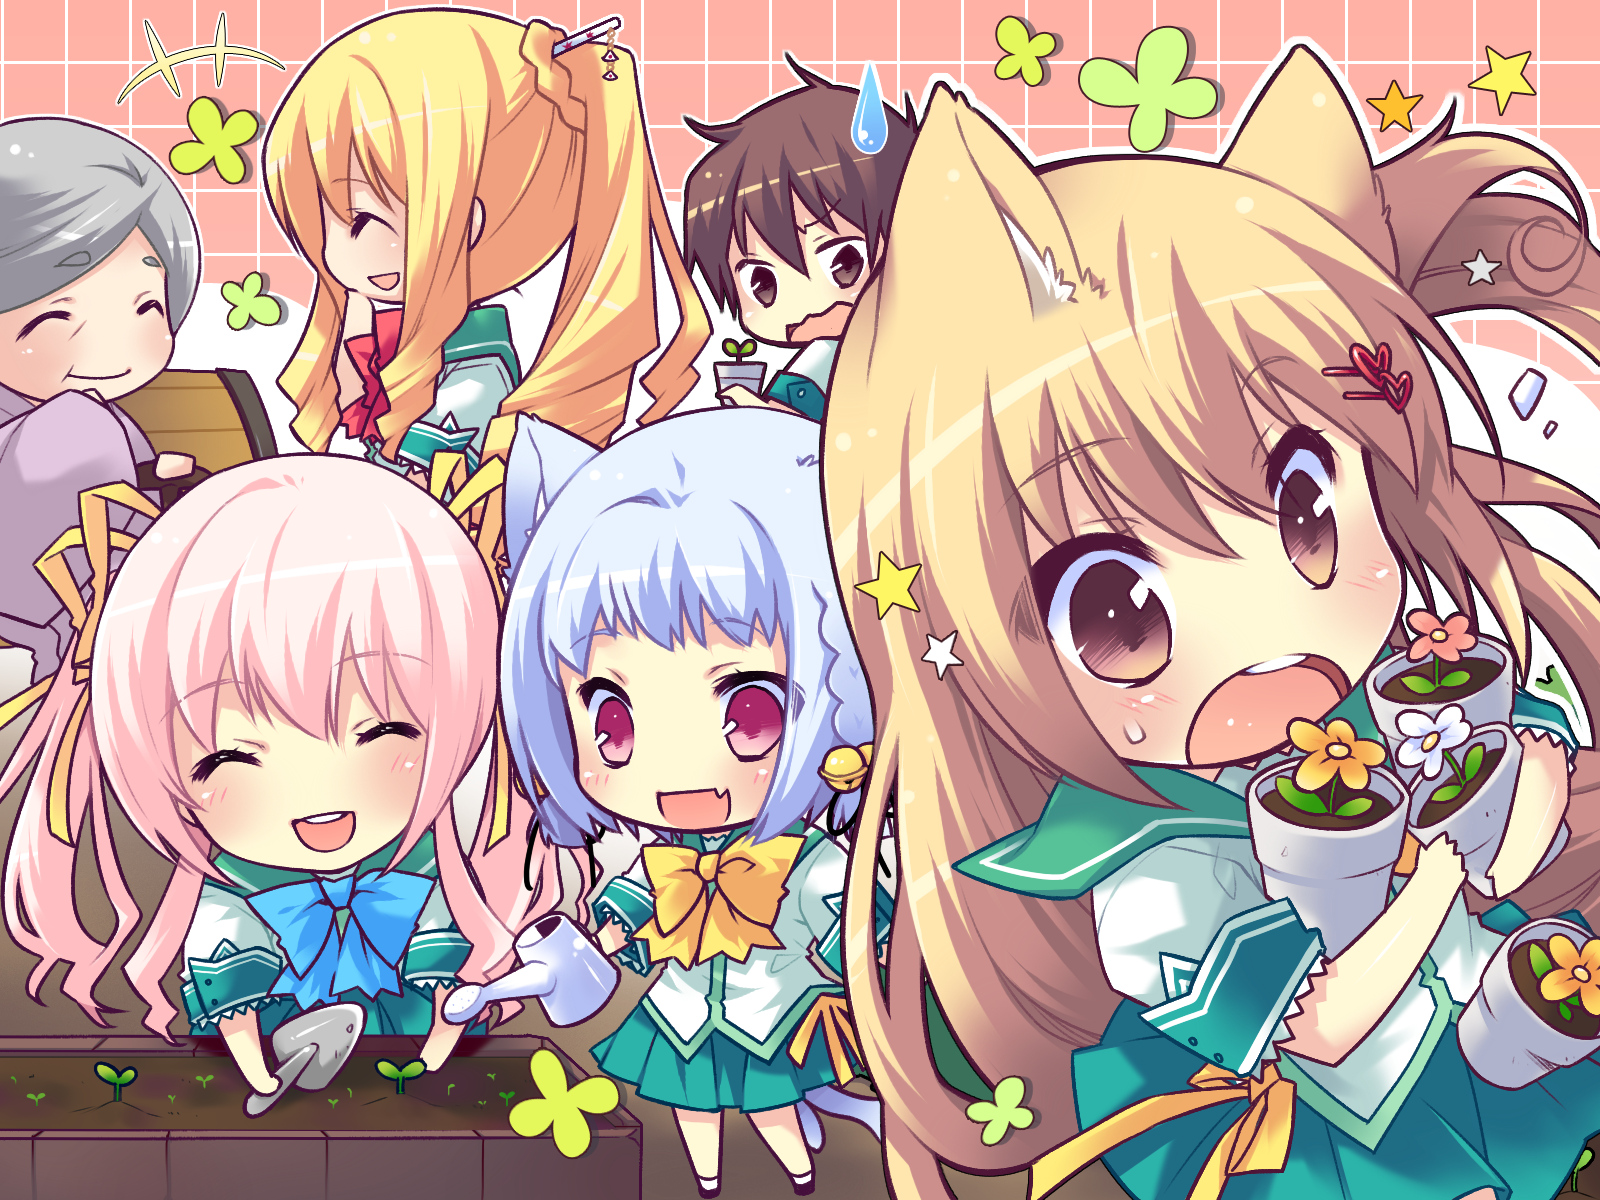 Chibi Group Picture by ~TheDragonCat on deviantART - Anny Imagenes!